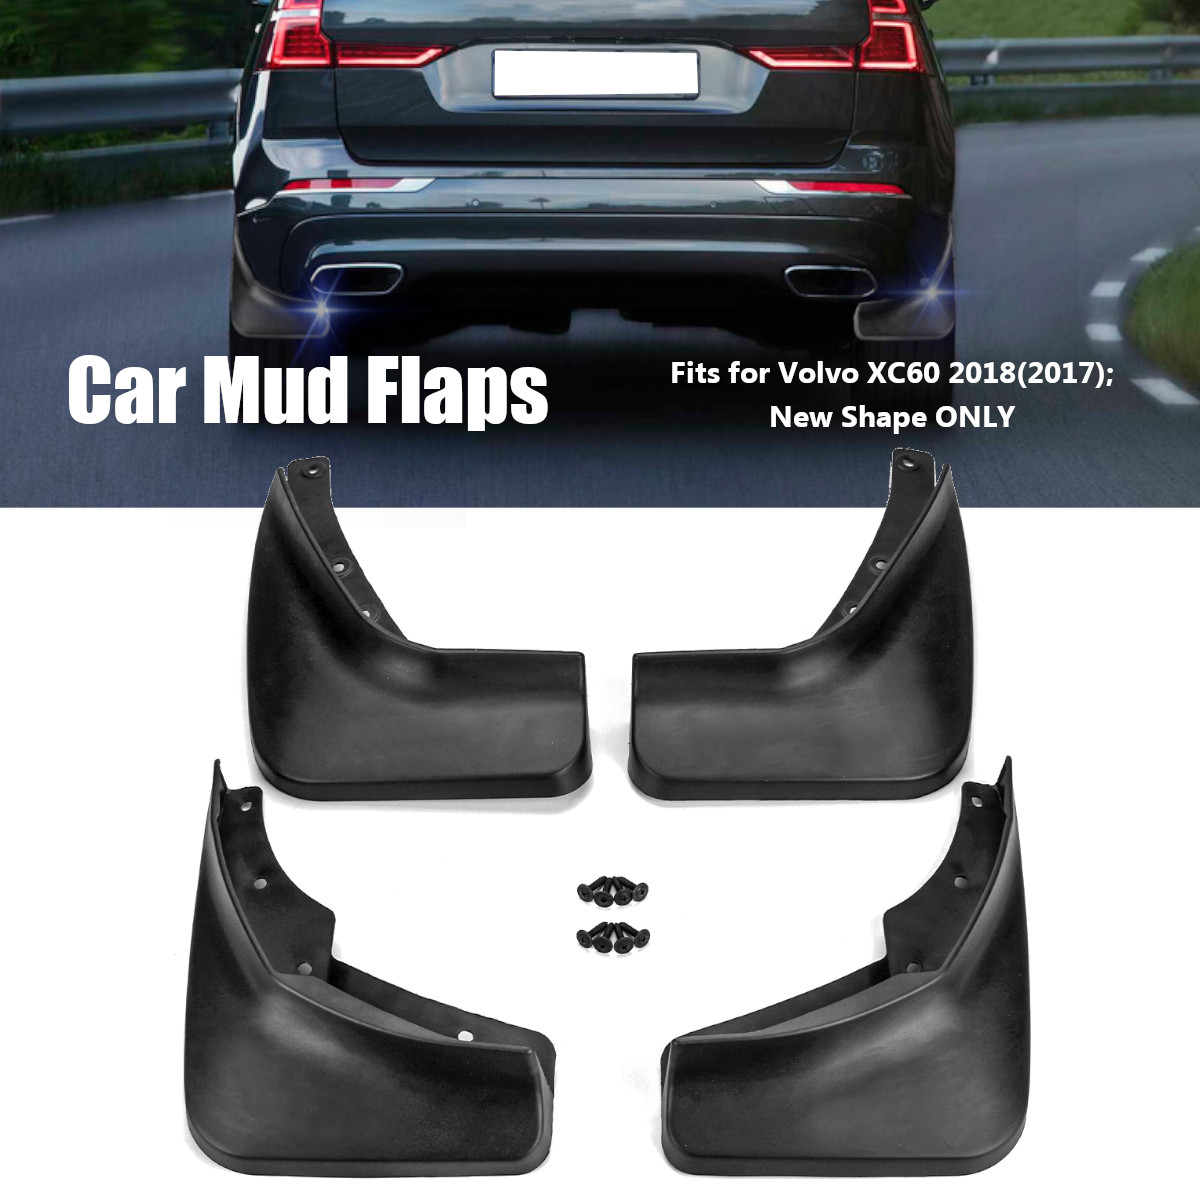 4pcs car mud flaps for volvo xc60 2018 front rear fender flares splash guards mudguards mudflaps